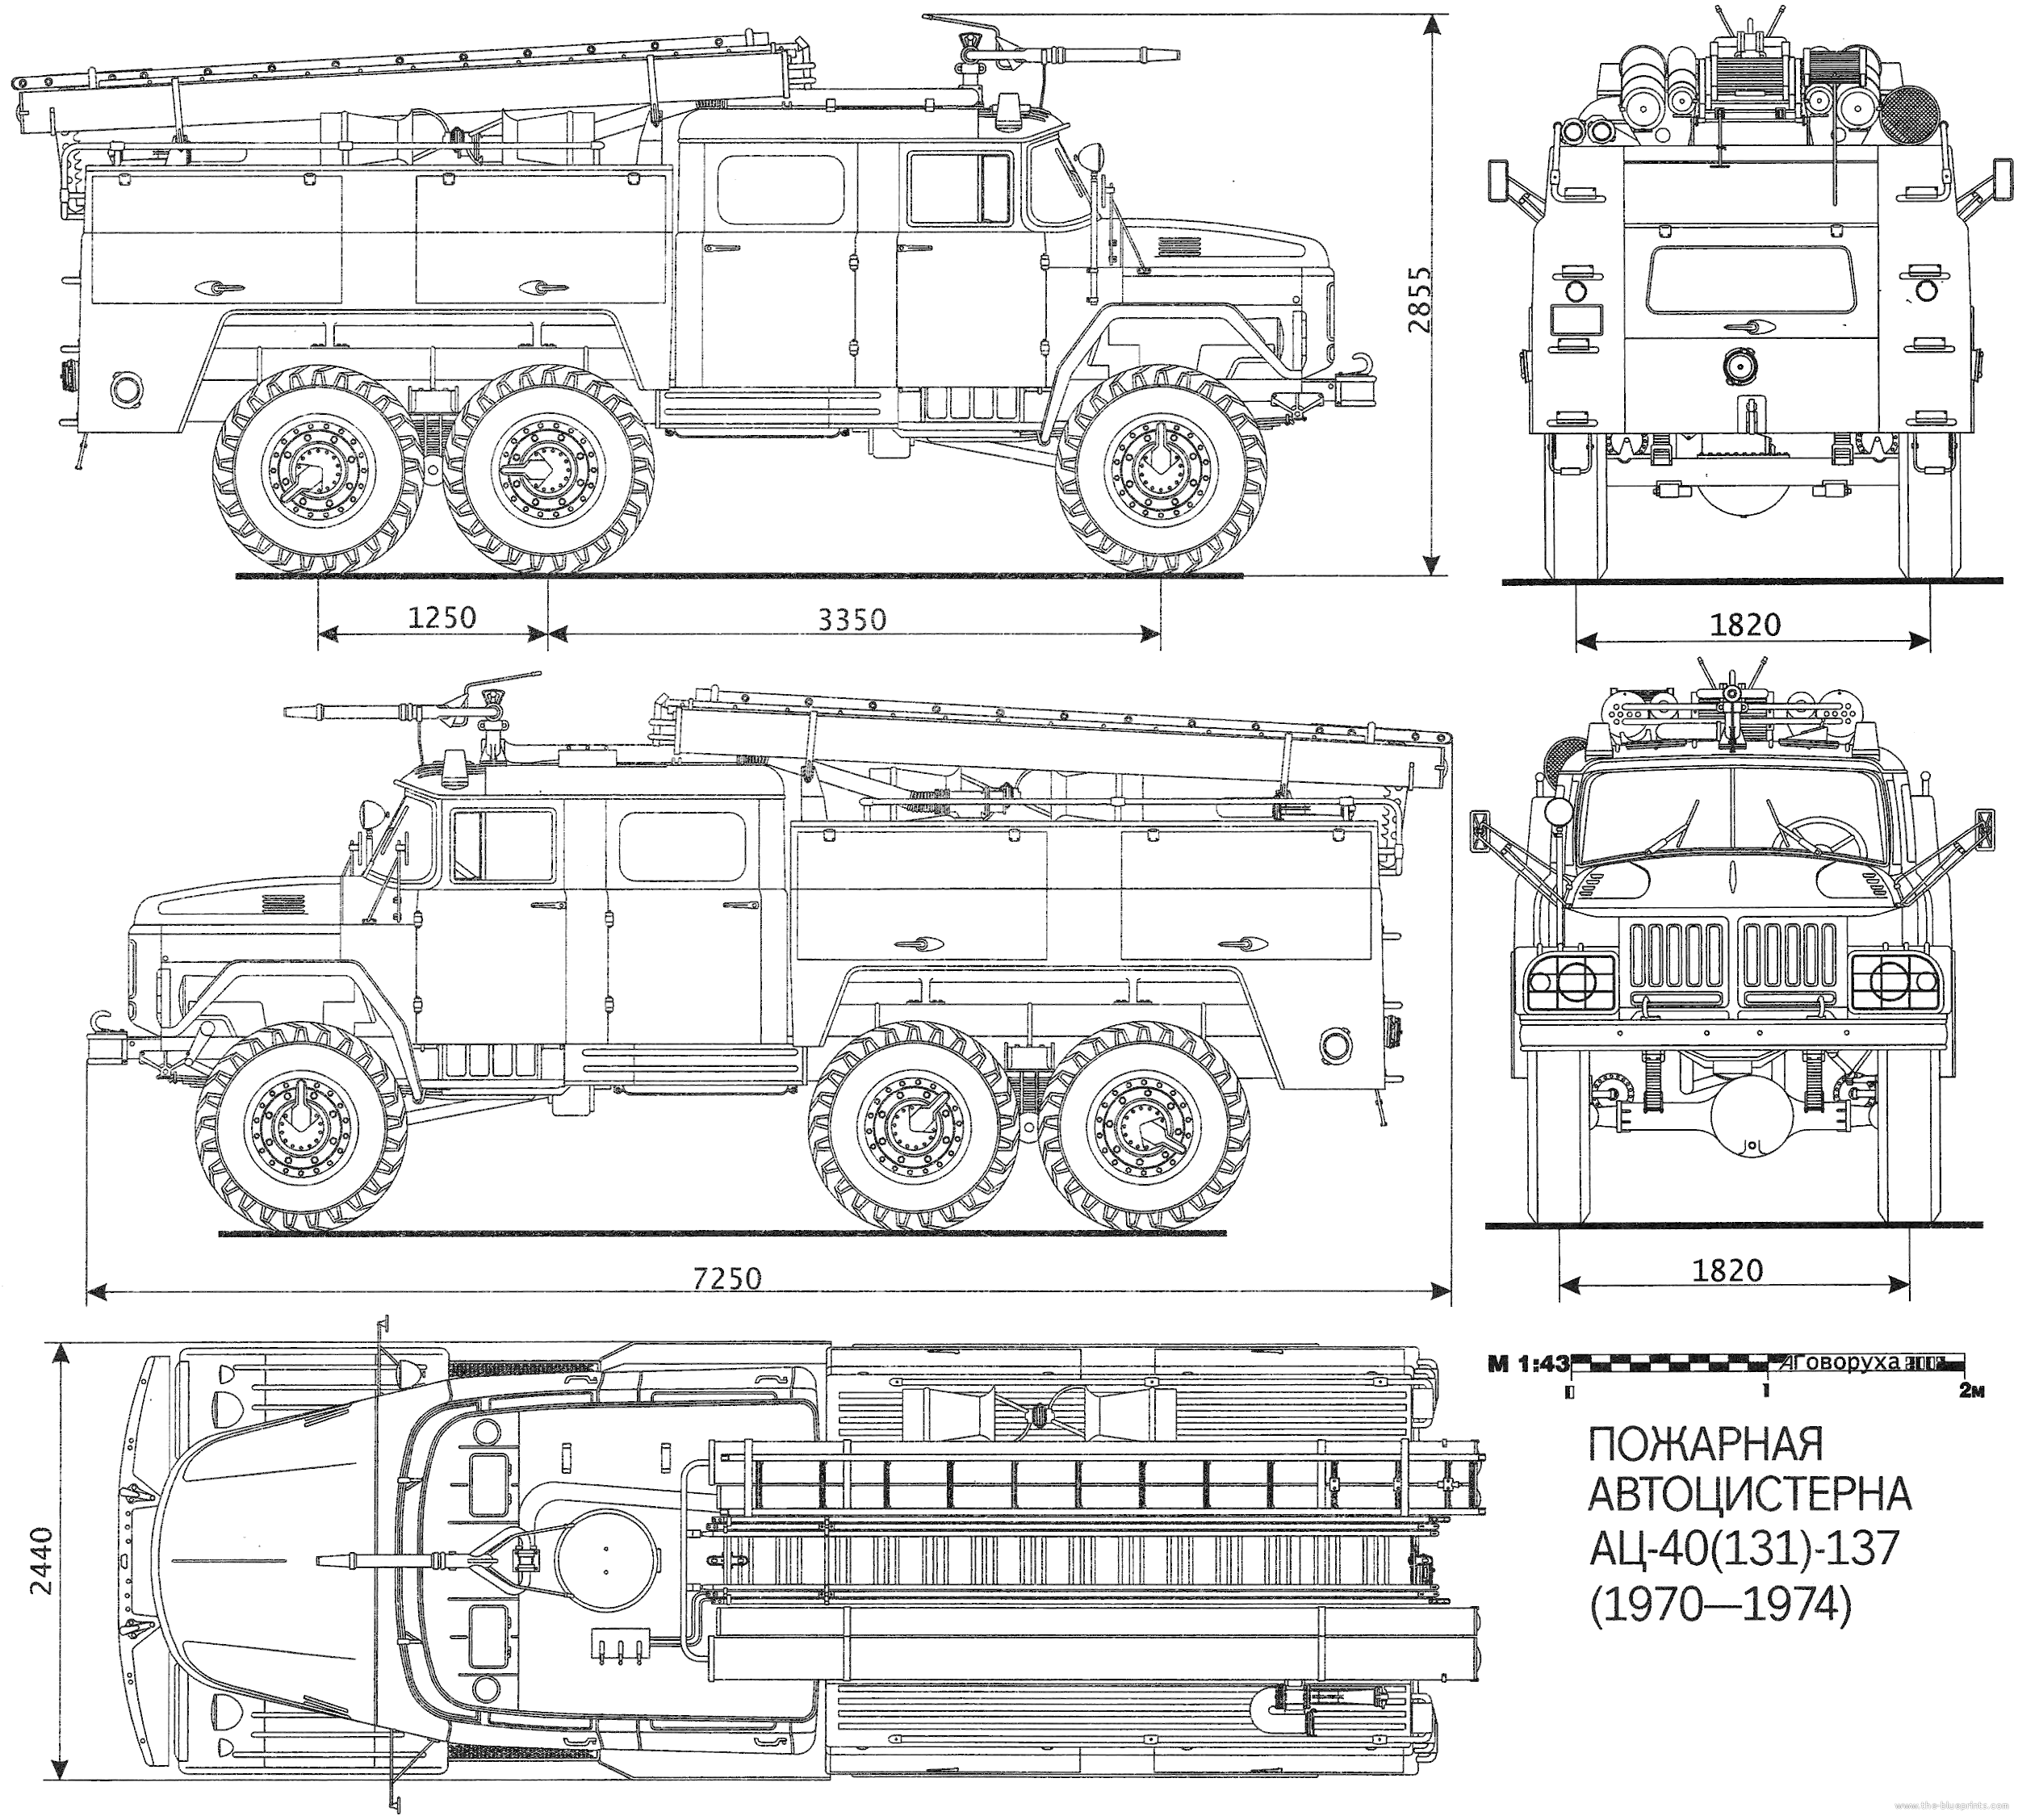 ZIL fire truck blueprint